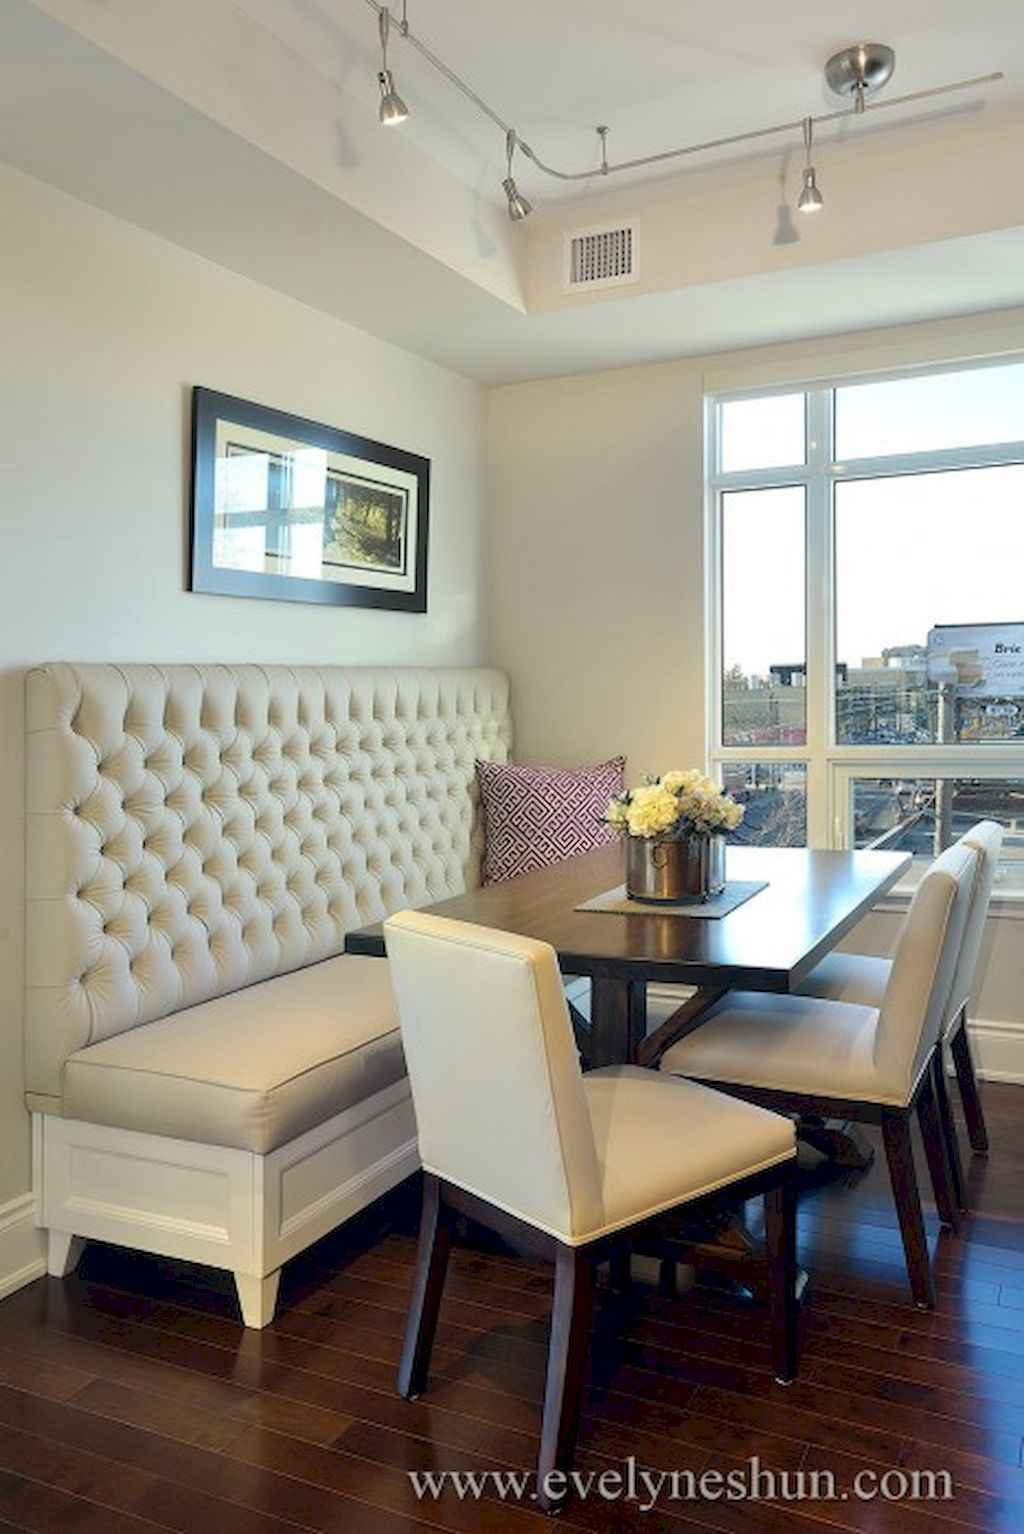 Clever small dining room ideas (13)